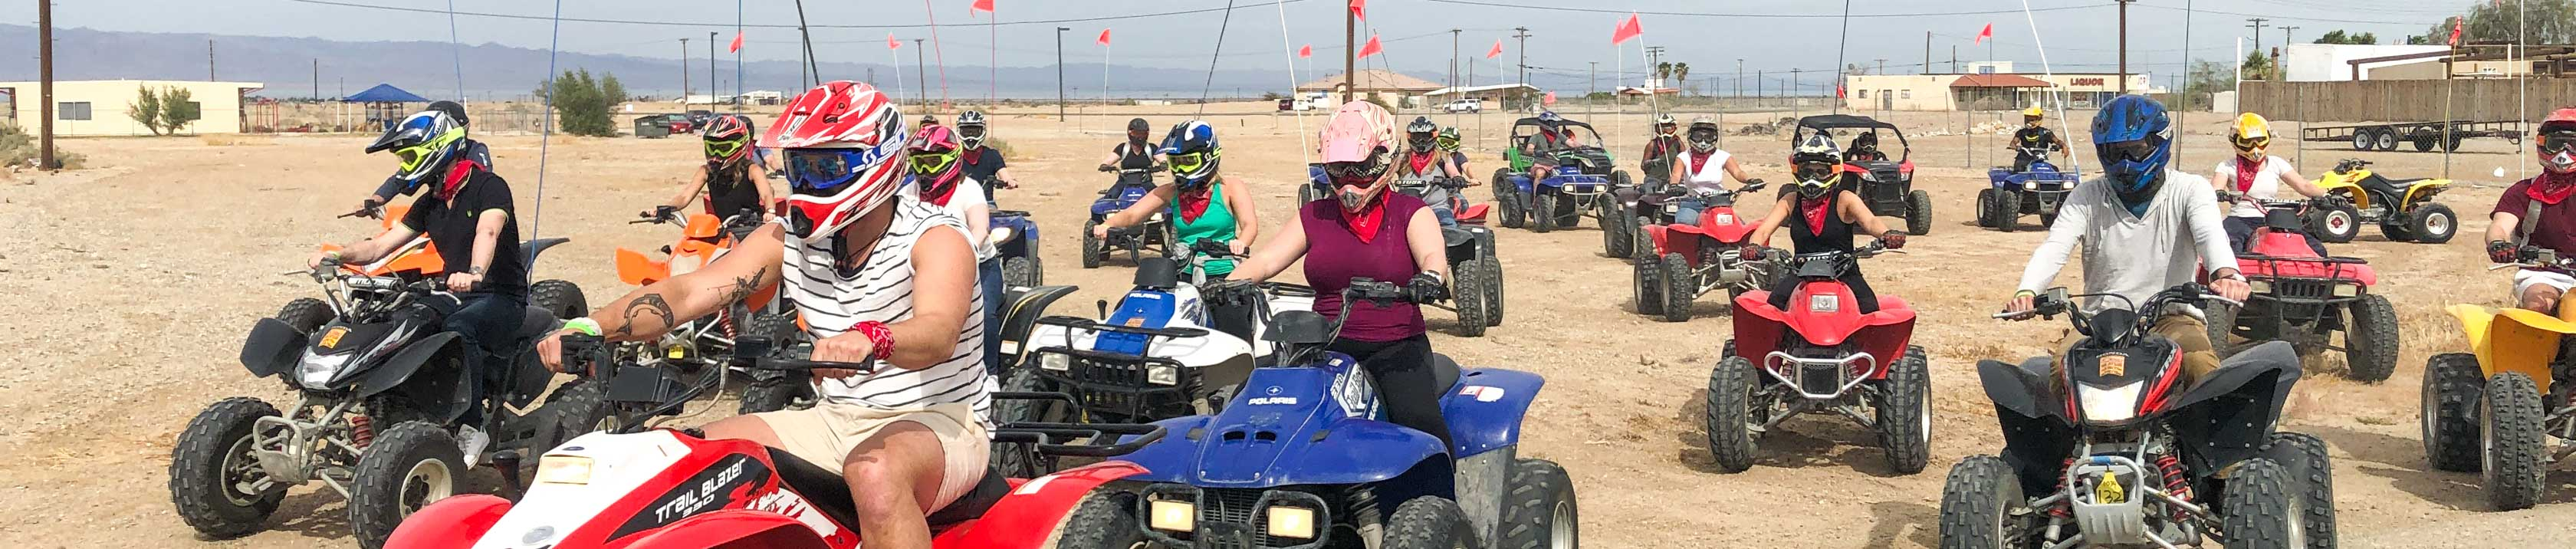 Large group of people riding on ATVs at the beach